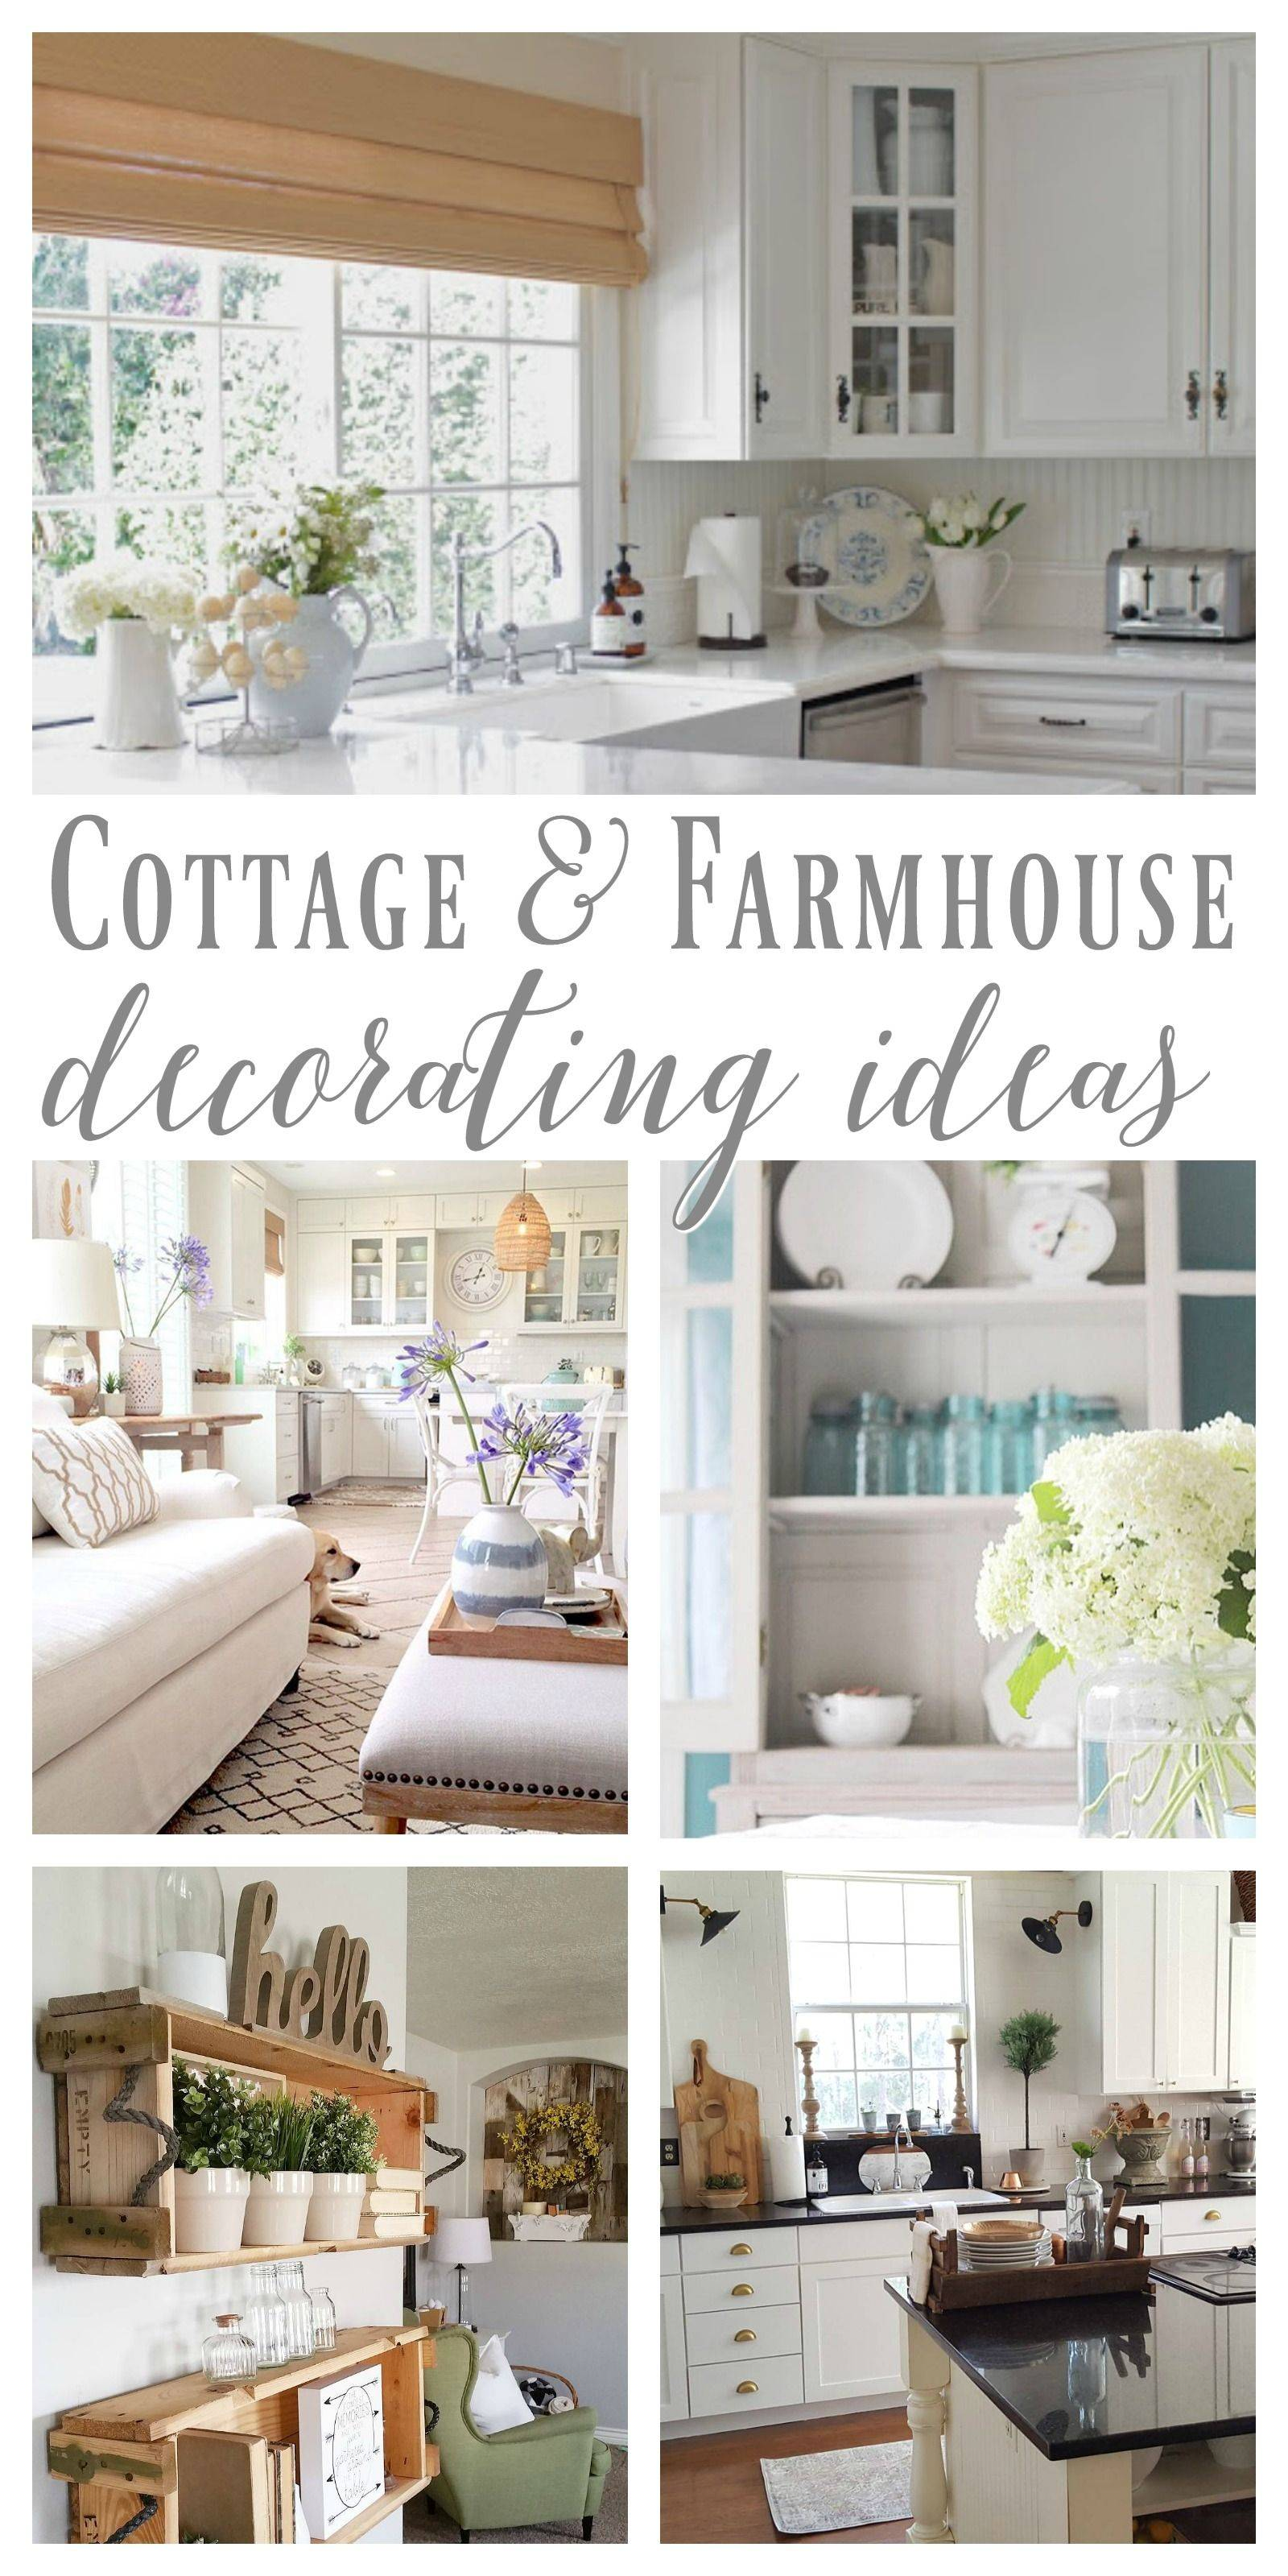 bedroom ideas cottage style lovely cottage farmhouse features from foxhollowfridayfavs of bedroom ideas cottage style